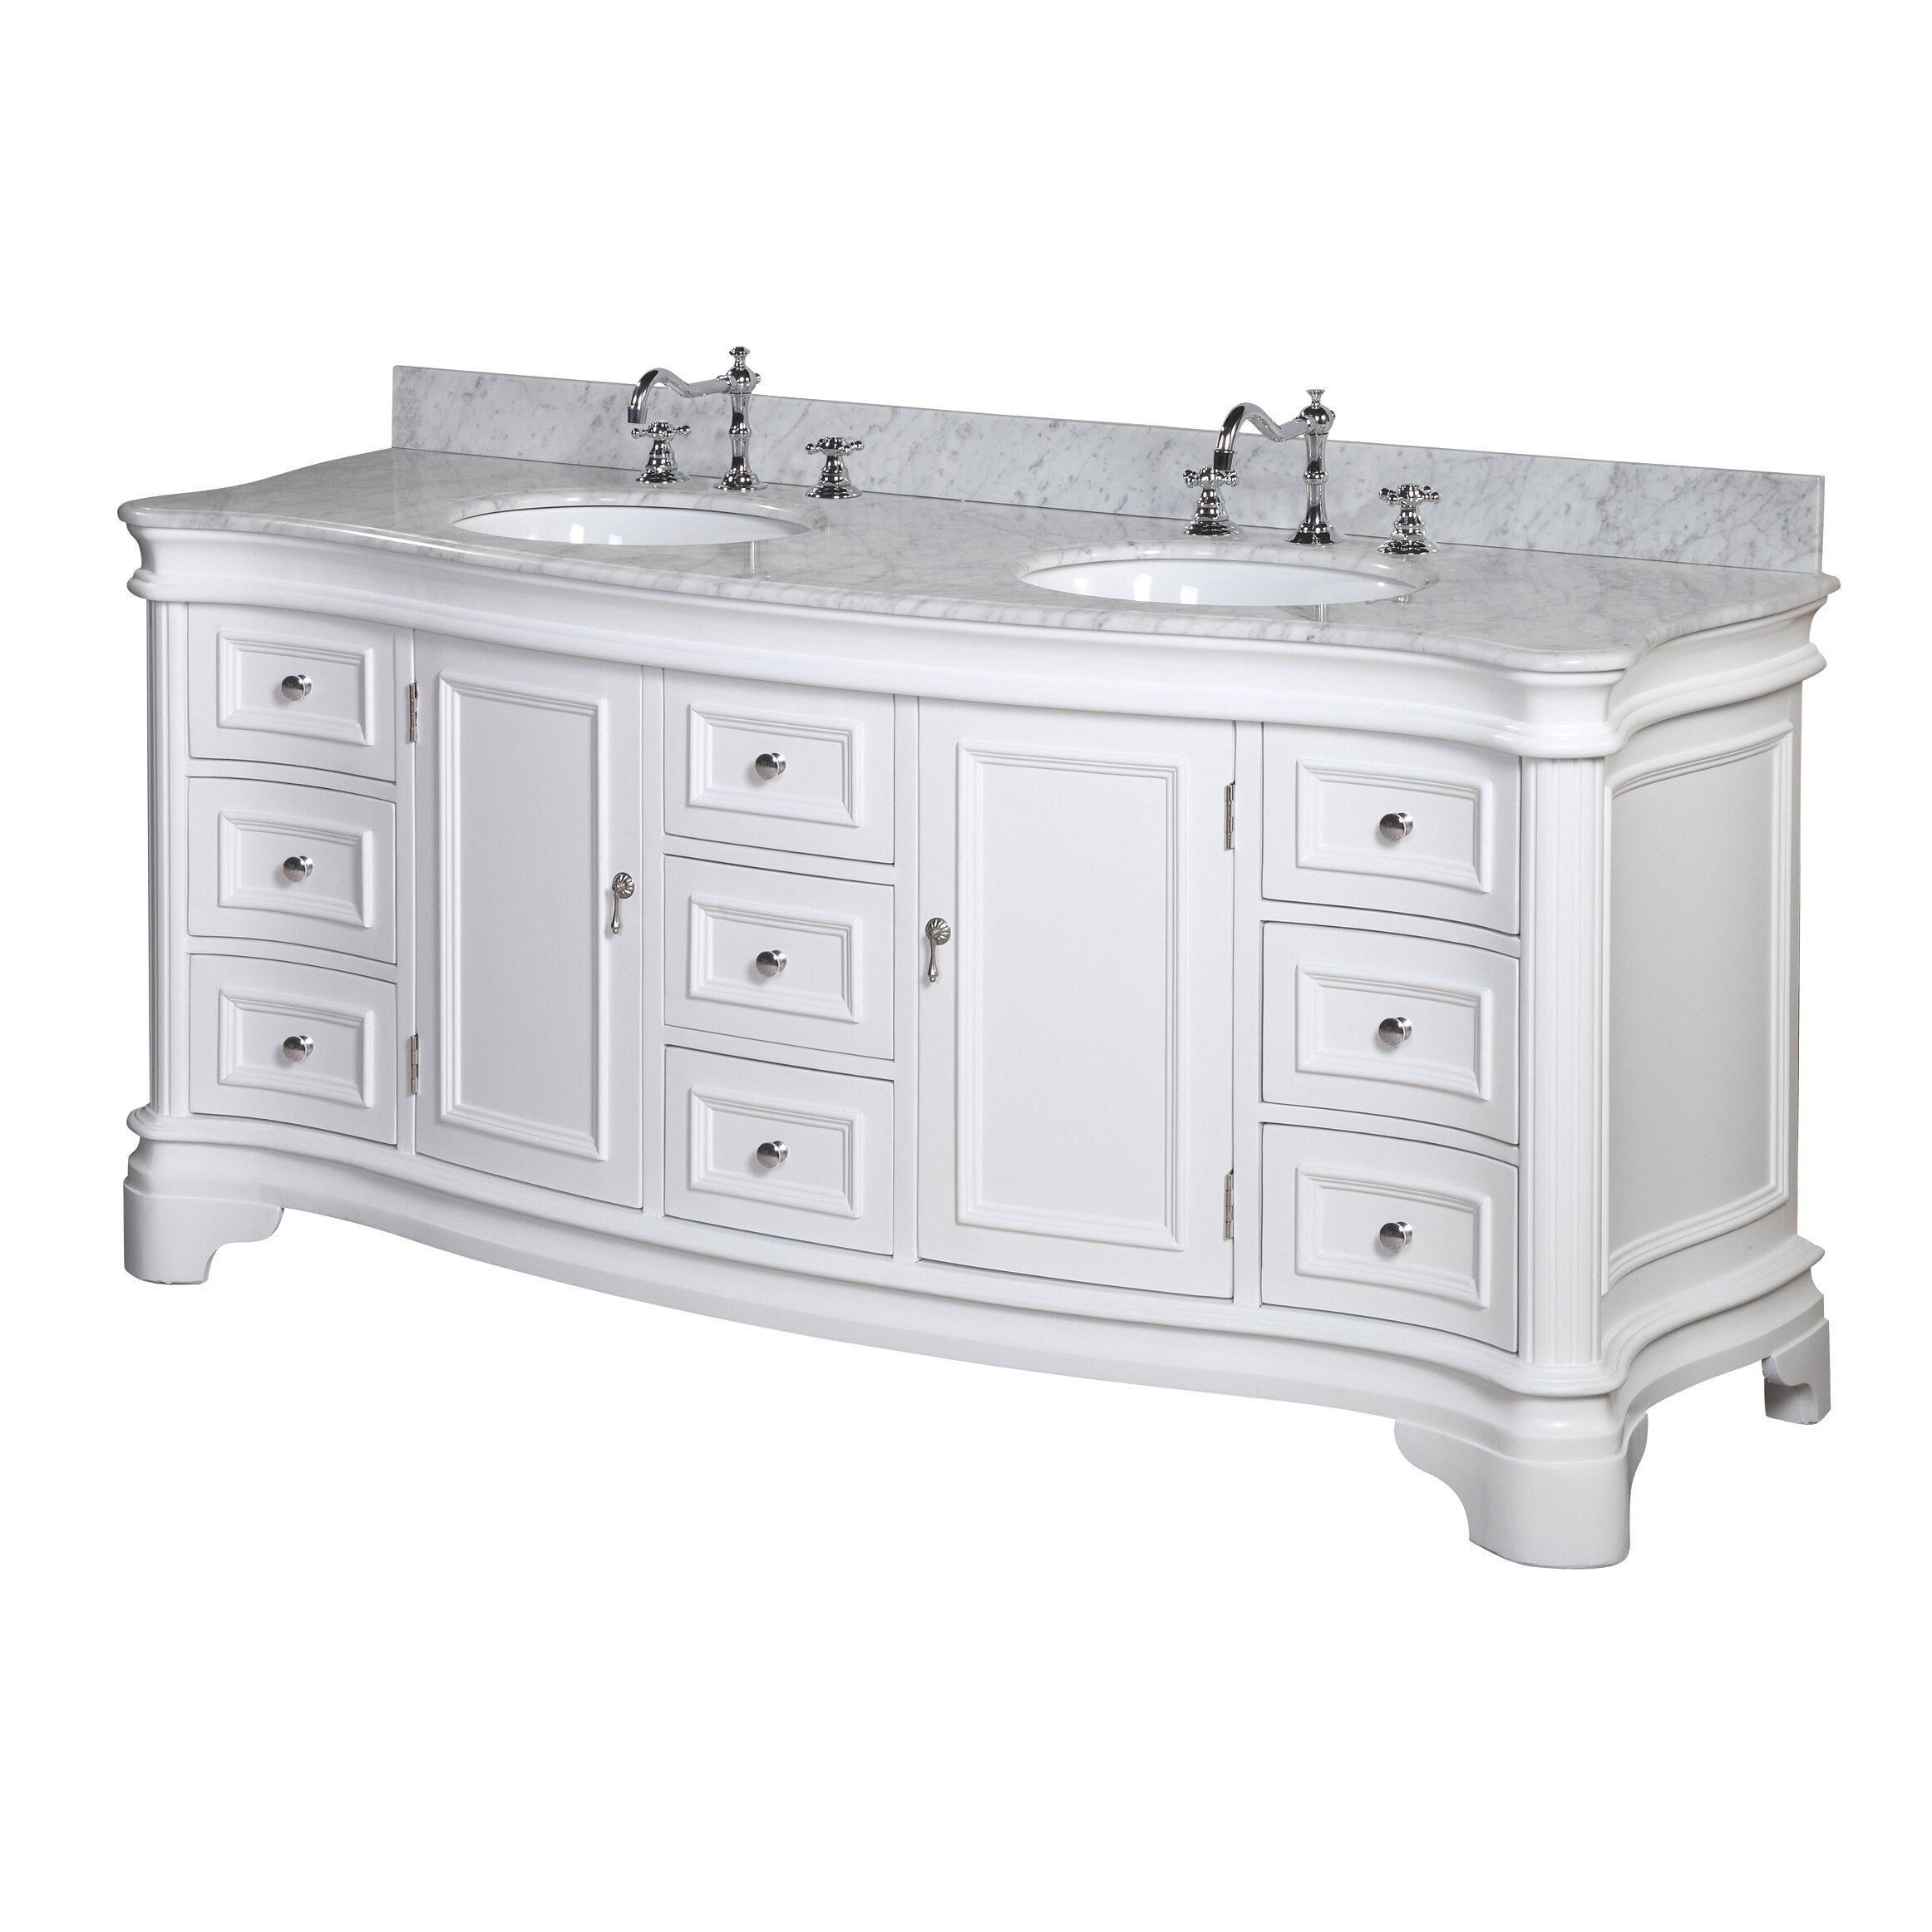 Kbc Katherine 72 Inch Bathroom Vanity Set Carrara White